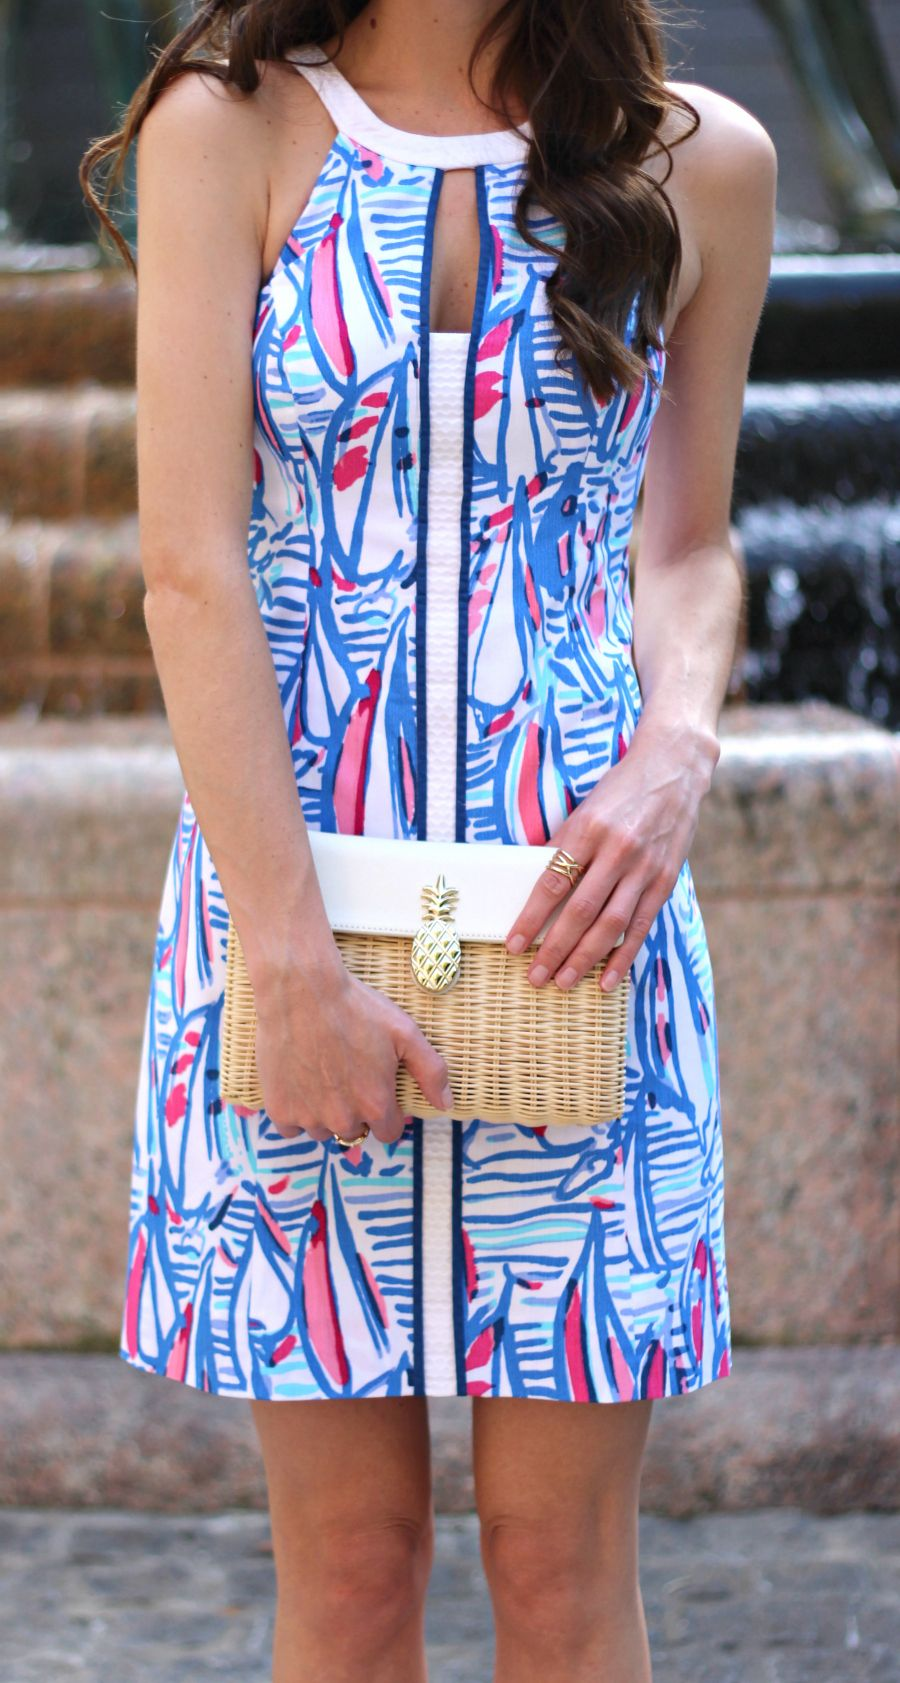 Lilly Pulitzer Pearl Shift Dress Diary Of A Debutante Lilly Pulitzer Outfits Summer Wedding Outfits Fashion [ 1683 x 900 Pixel ]